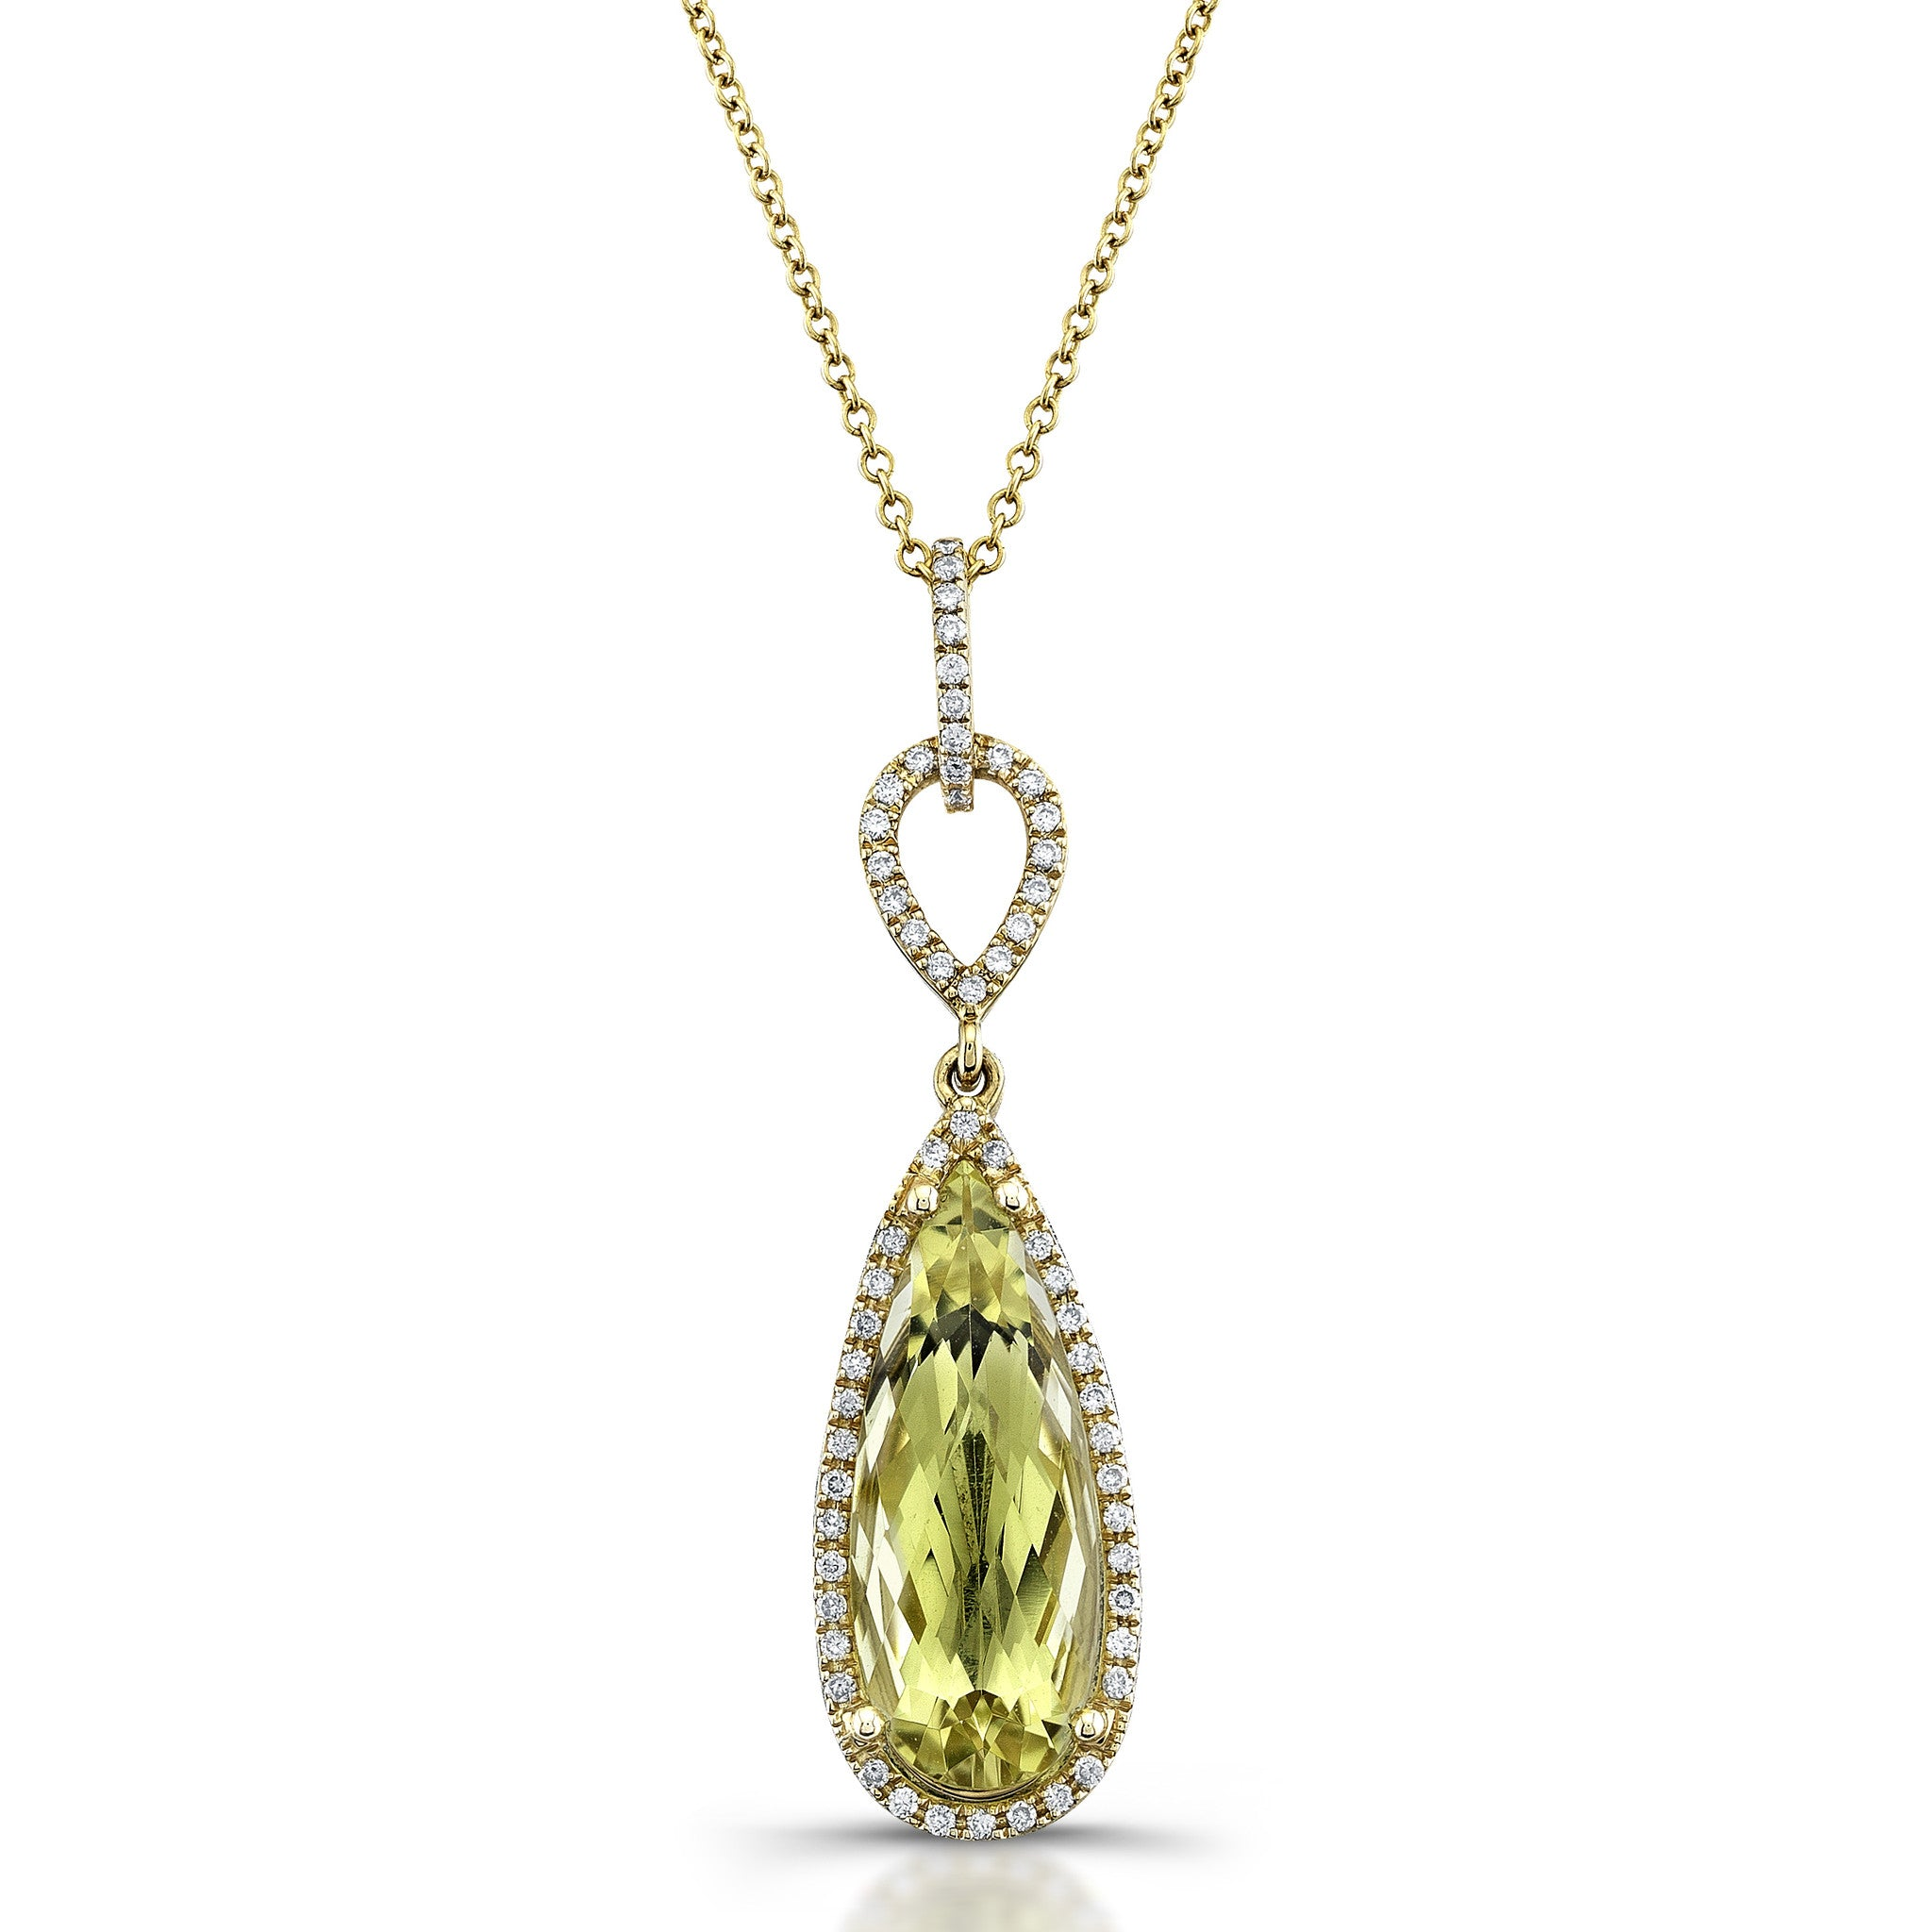 STUNNING PEAR SHAPED LEMON QUARTZ DIAMOND PENDANT IN YELLOW GOLD